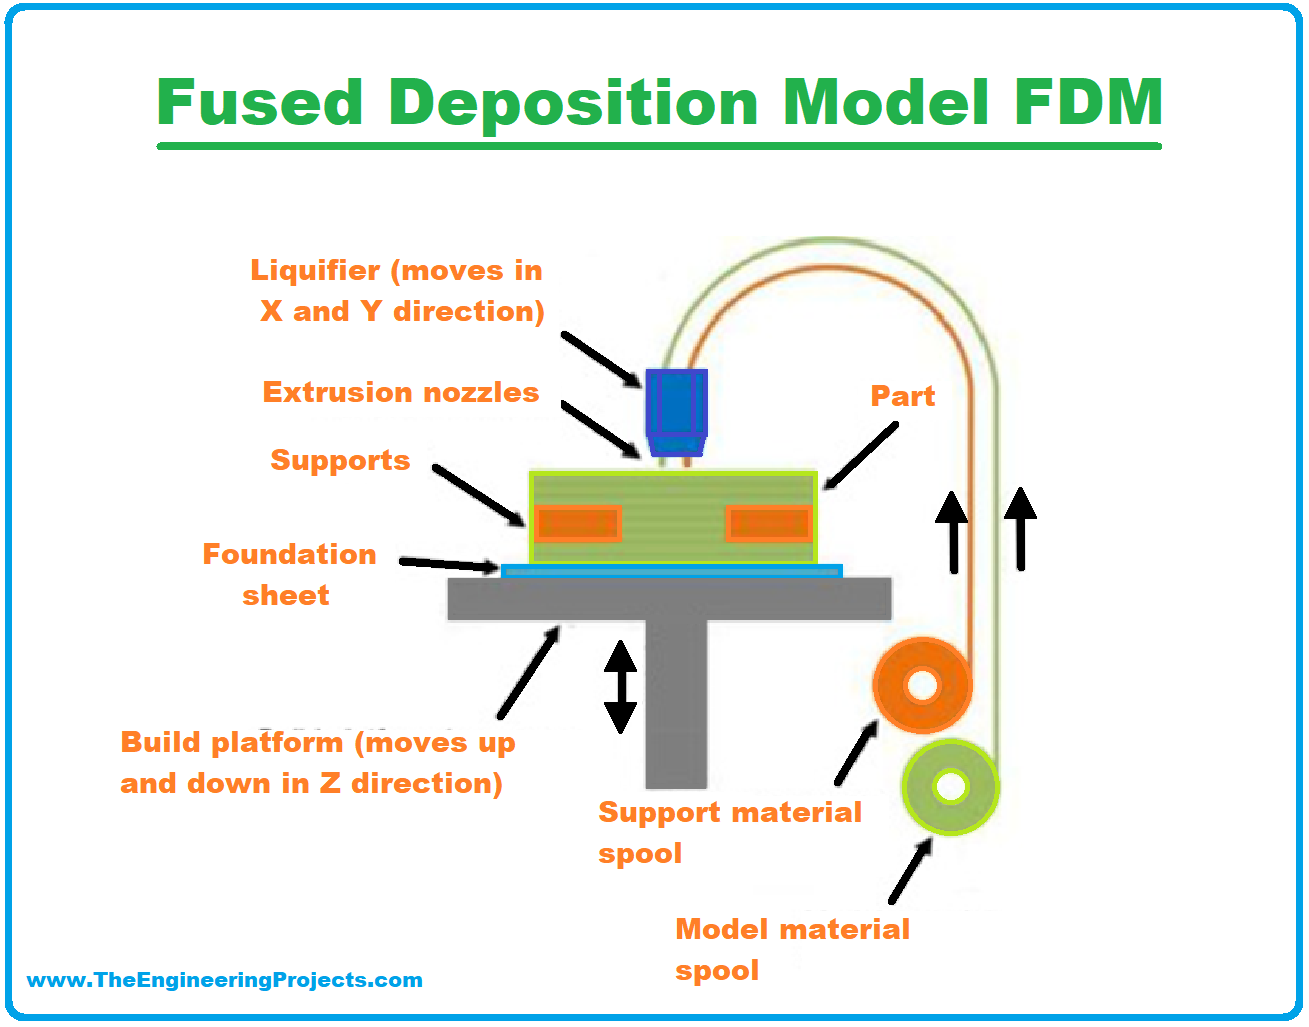 3D Printing, 3D Printer, 3D Printing definition, What is 3D Printing, Definition of 3D printing, 3D Printing Technology, Process of 3D printing, Applications of 3D Printing, 3D Printing examples, 3D Printing advantages, fused deposition